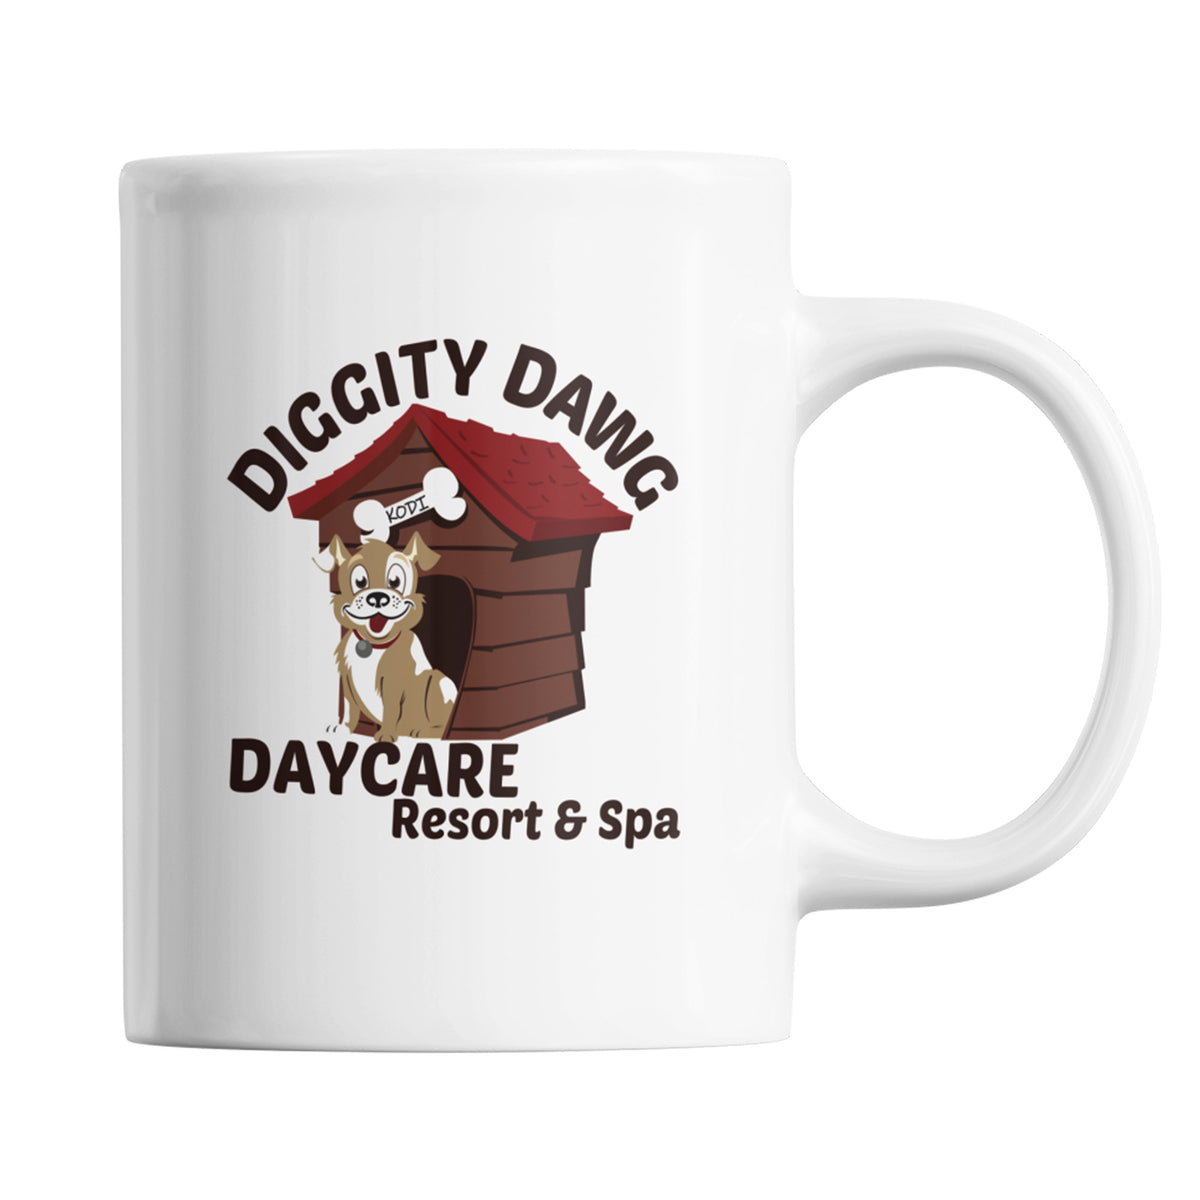 Diggity Dawg Daycare We Support PA Coffee Mug